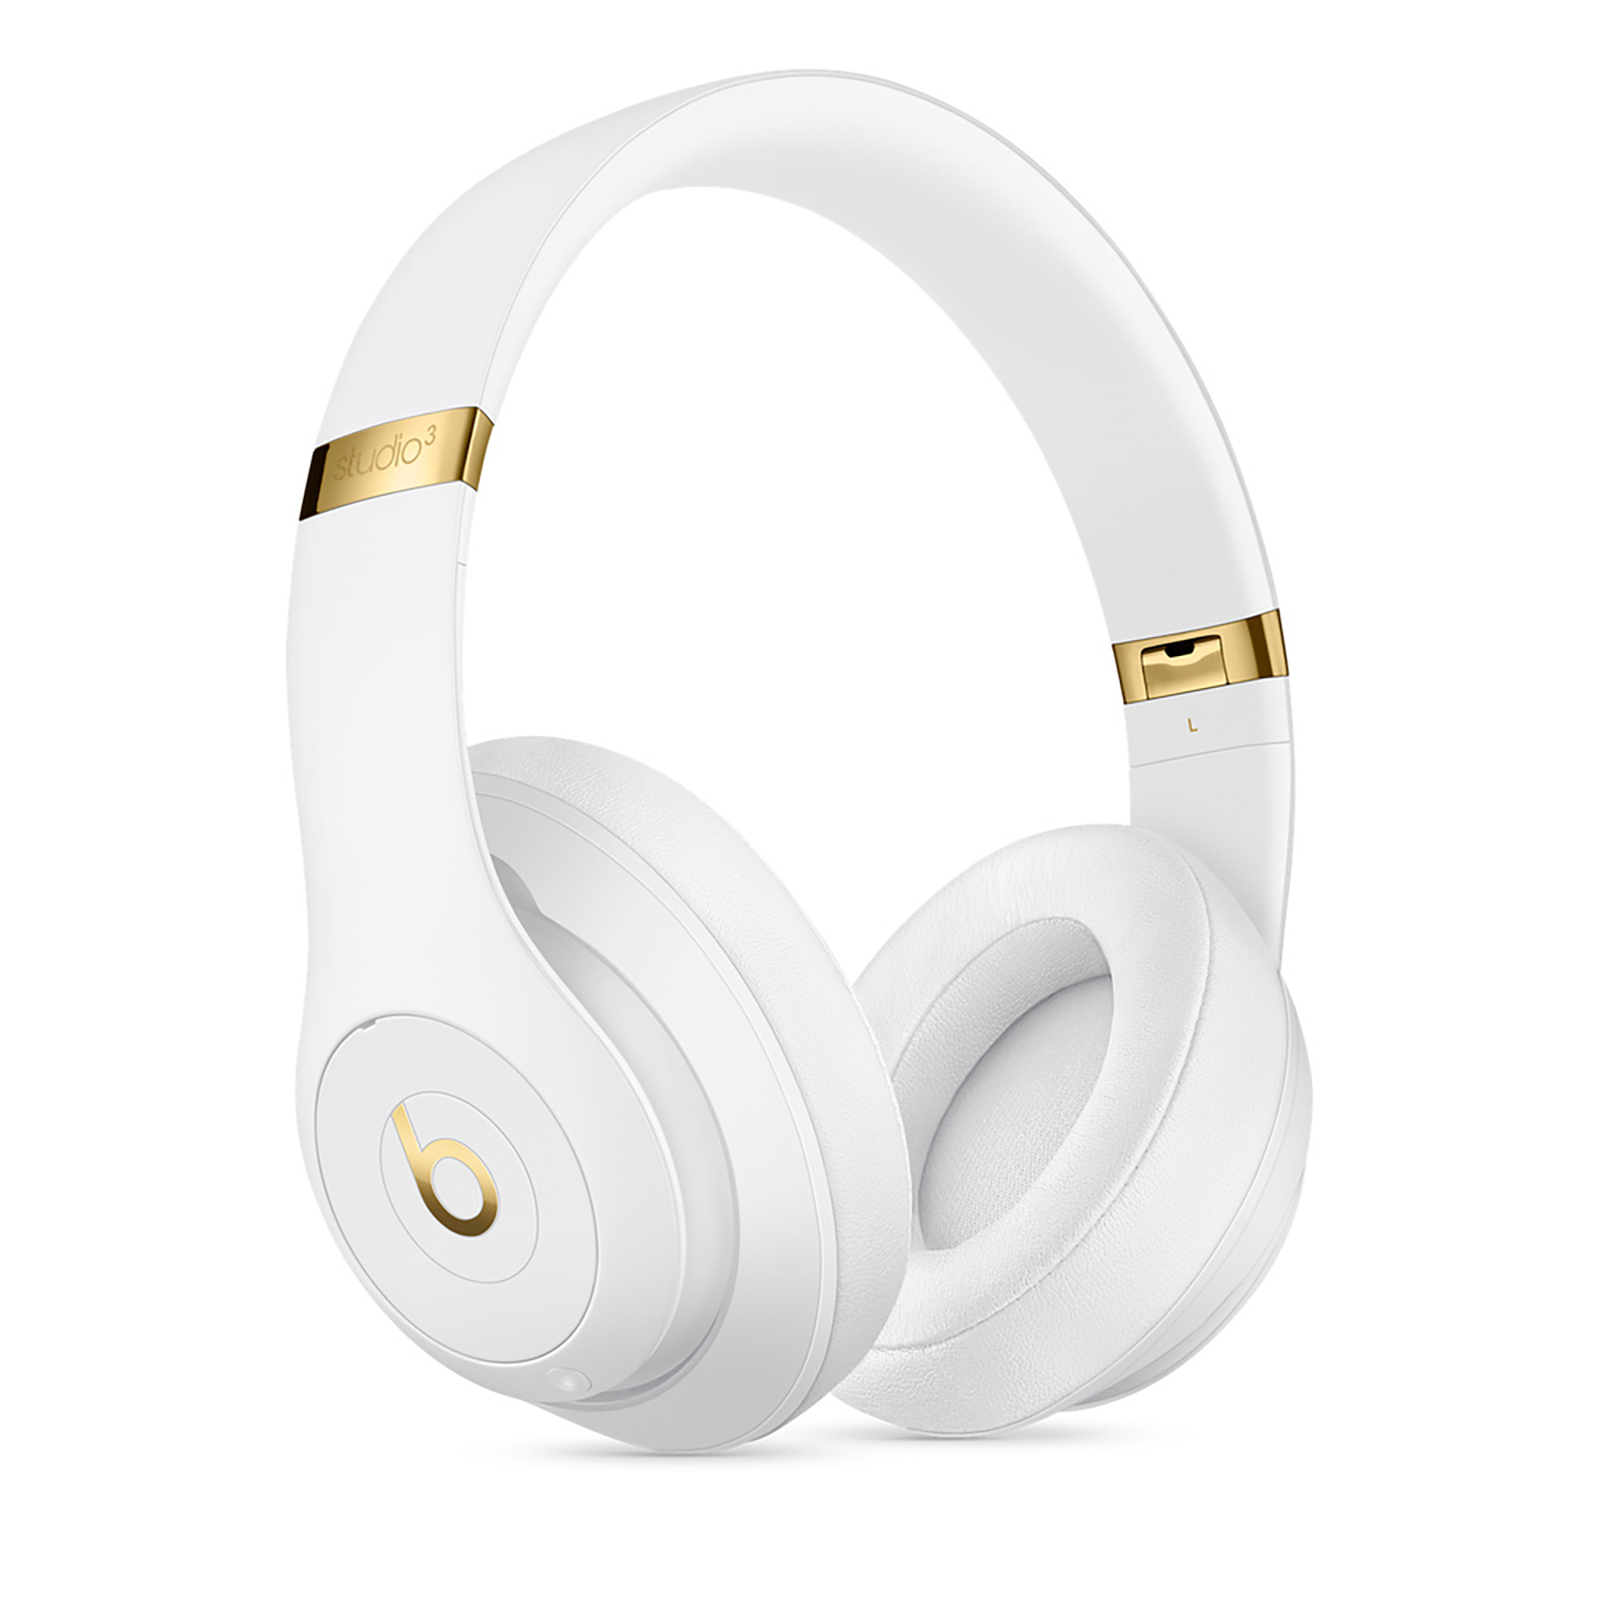 Beats Studio 3 Over-Ear Wireless Headphone with Mic (Bluetooth, MX3Y2ZM/A, White)_1